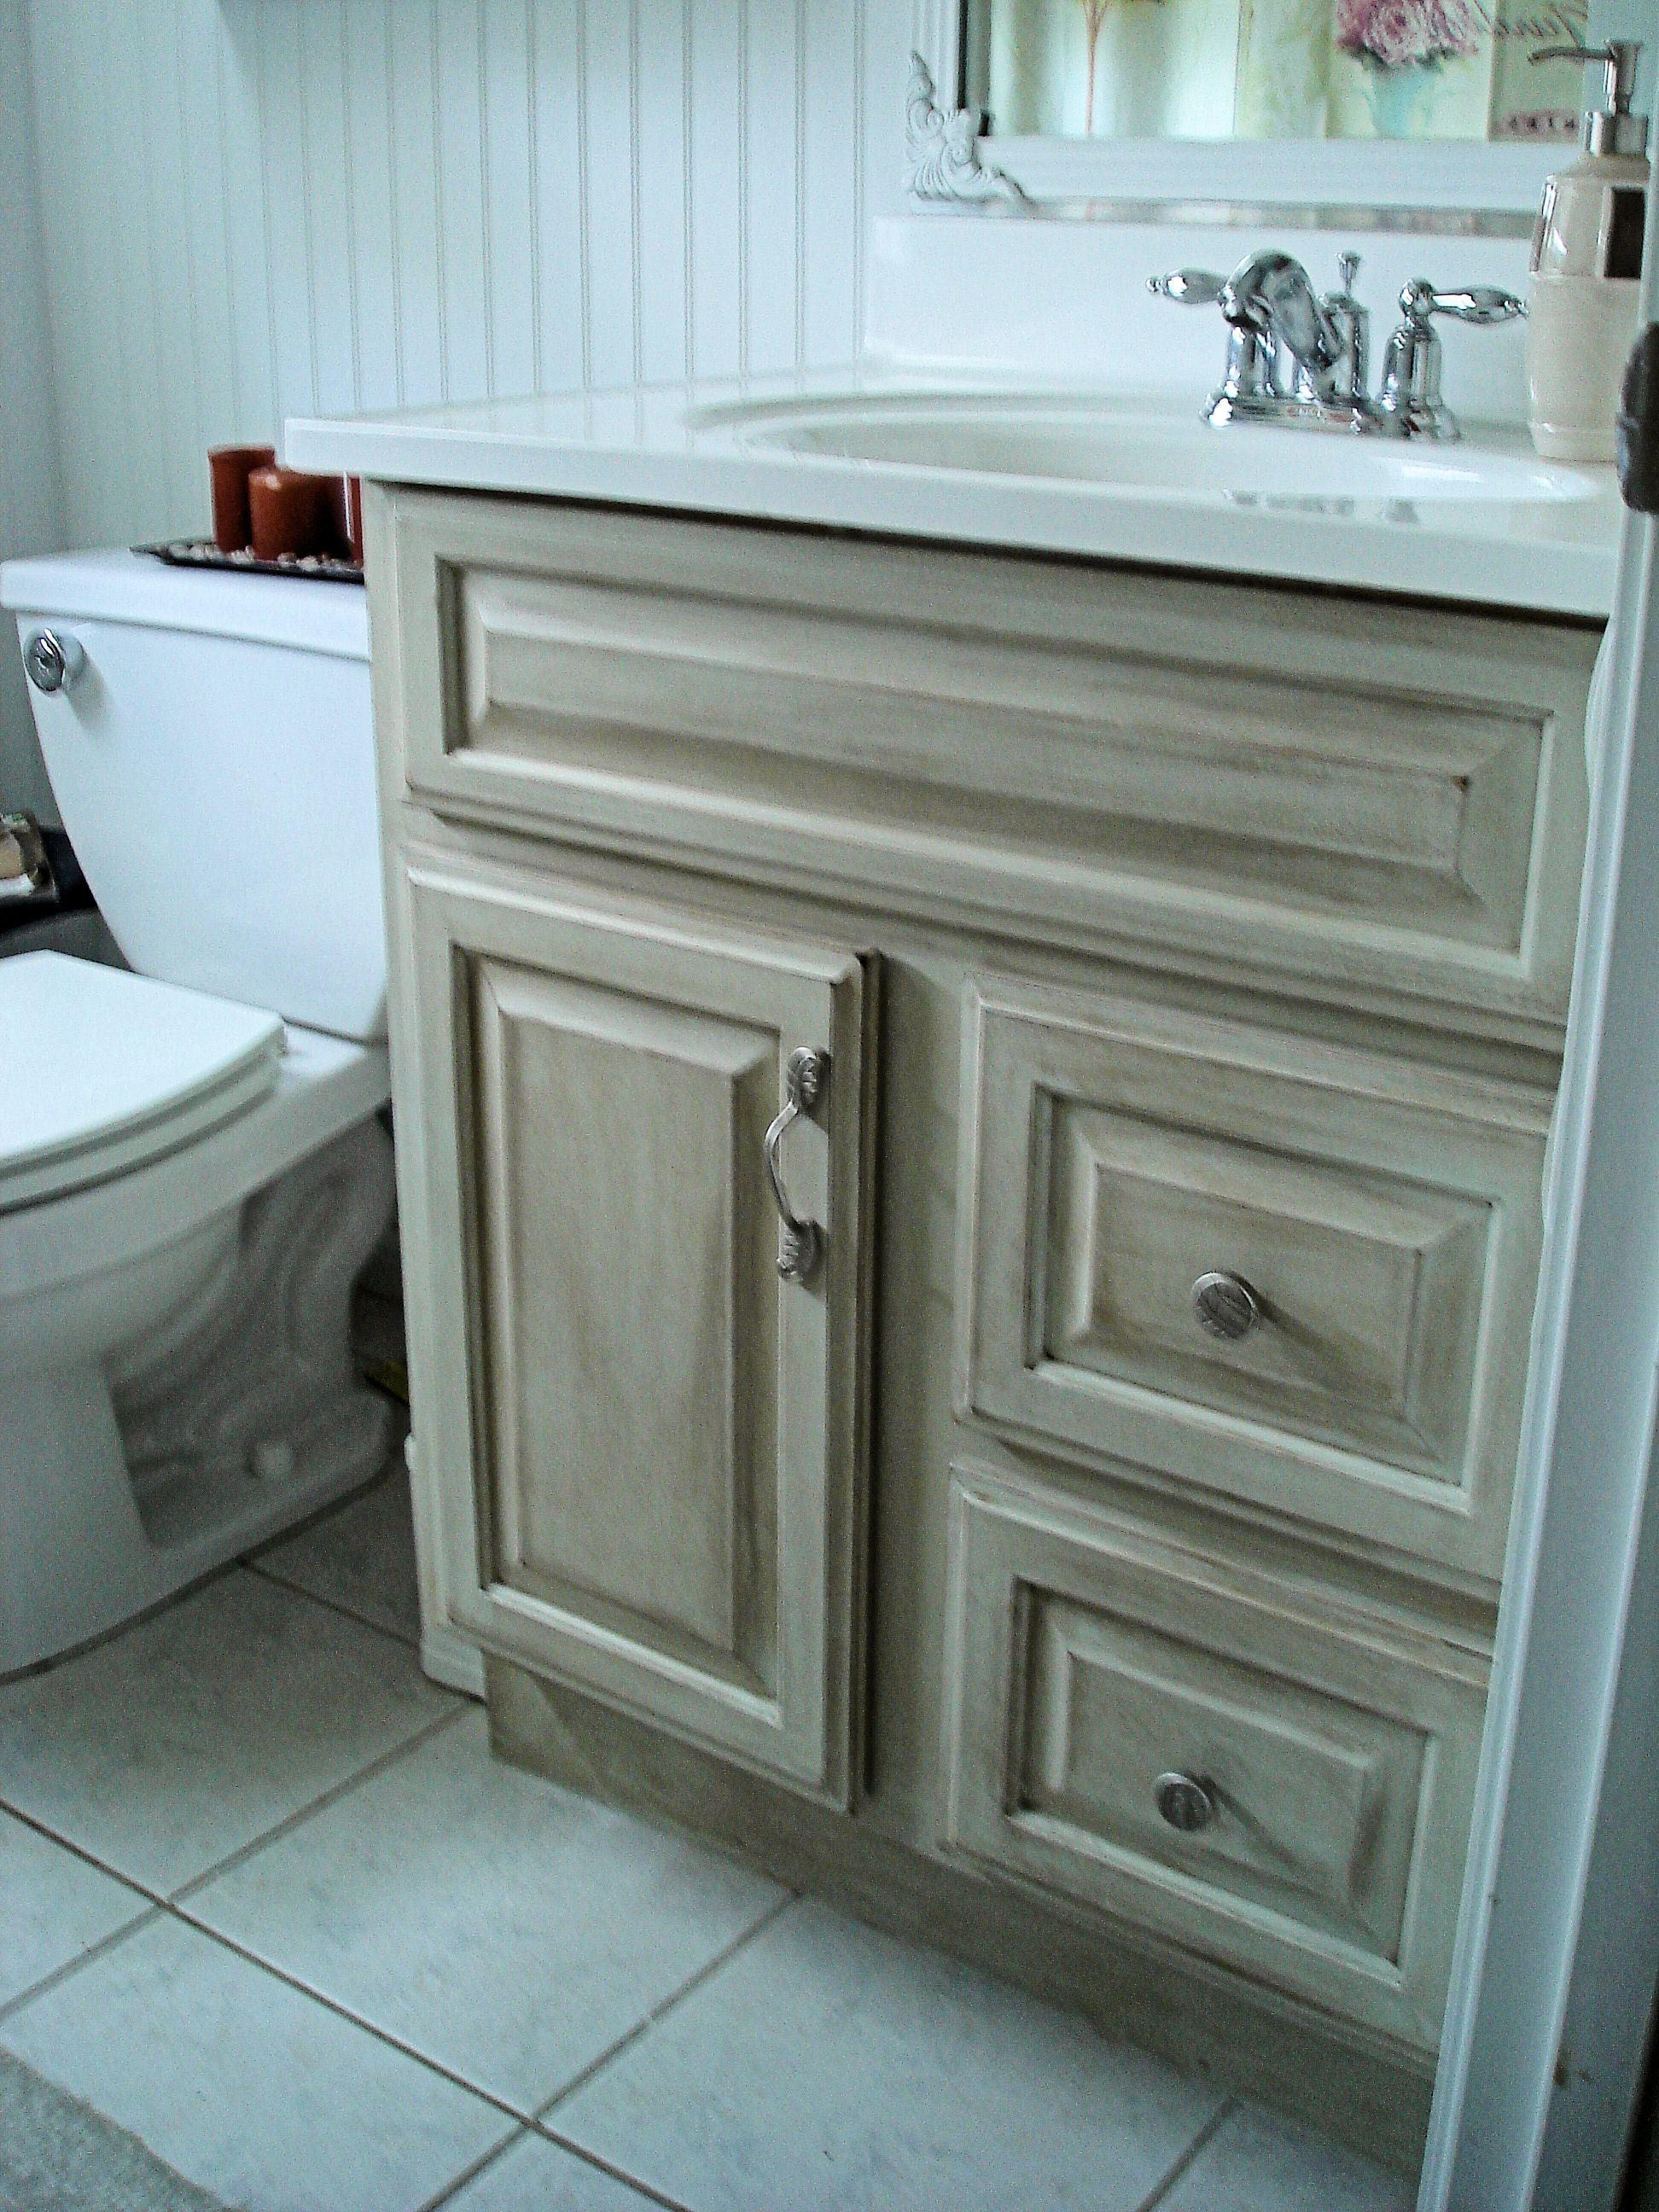 Bathroom Interior Ideas Diy Vanity Plans Remodel Excerpt